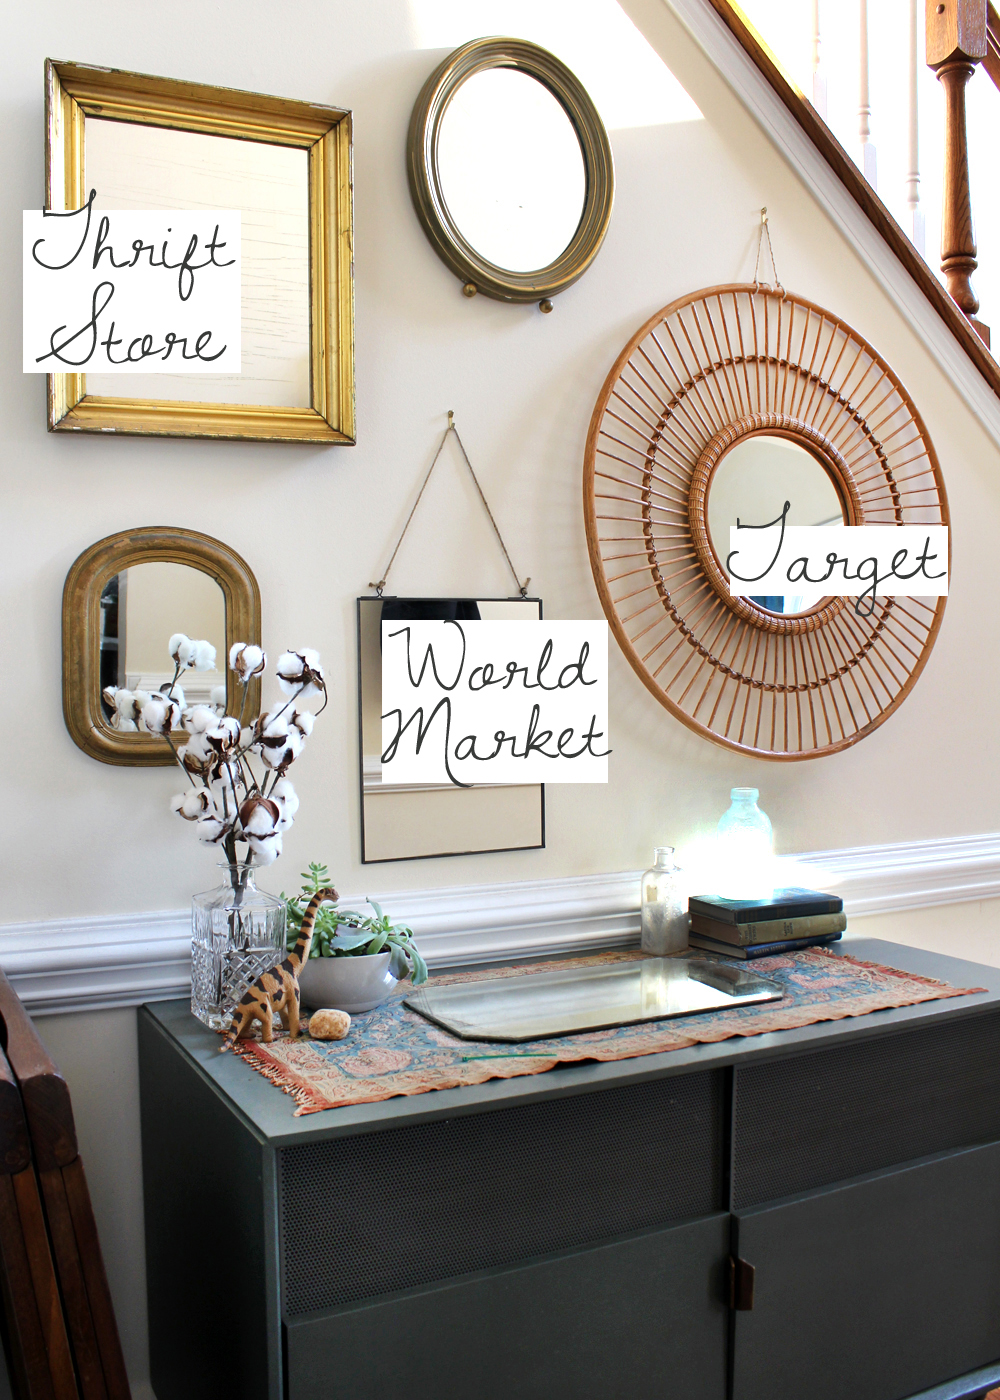 When making a mirror gallery wall mix in vintage/antique mirrors with new for added texture